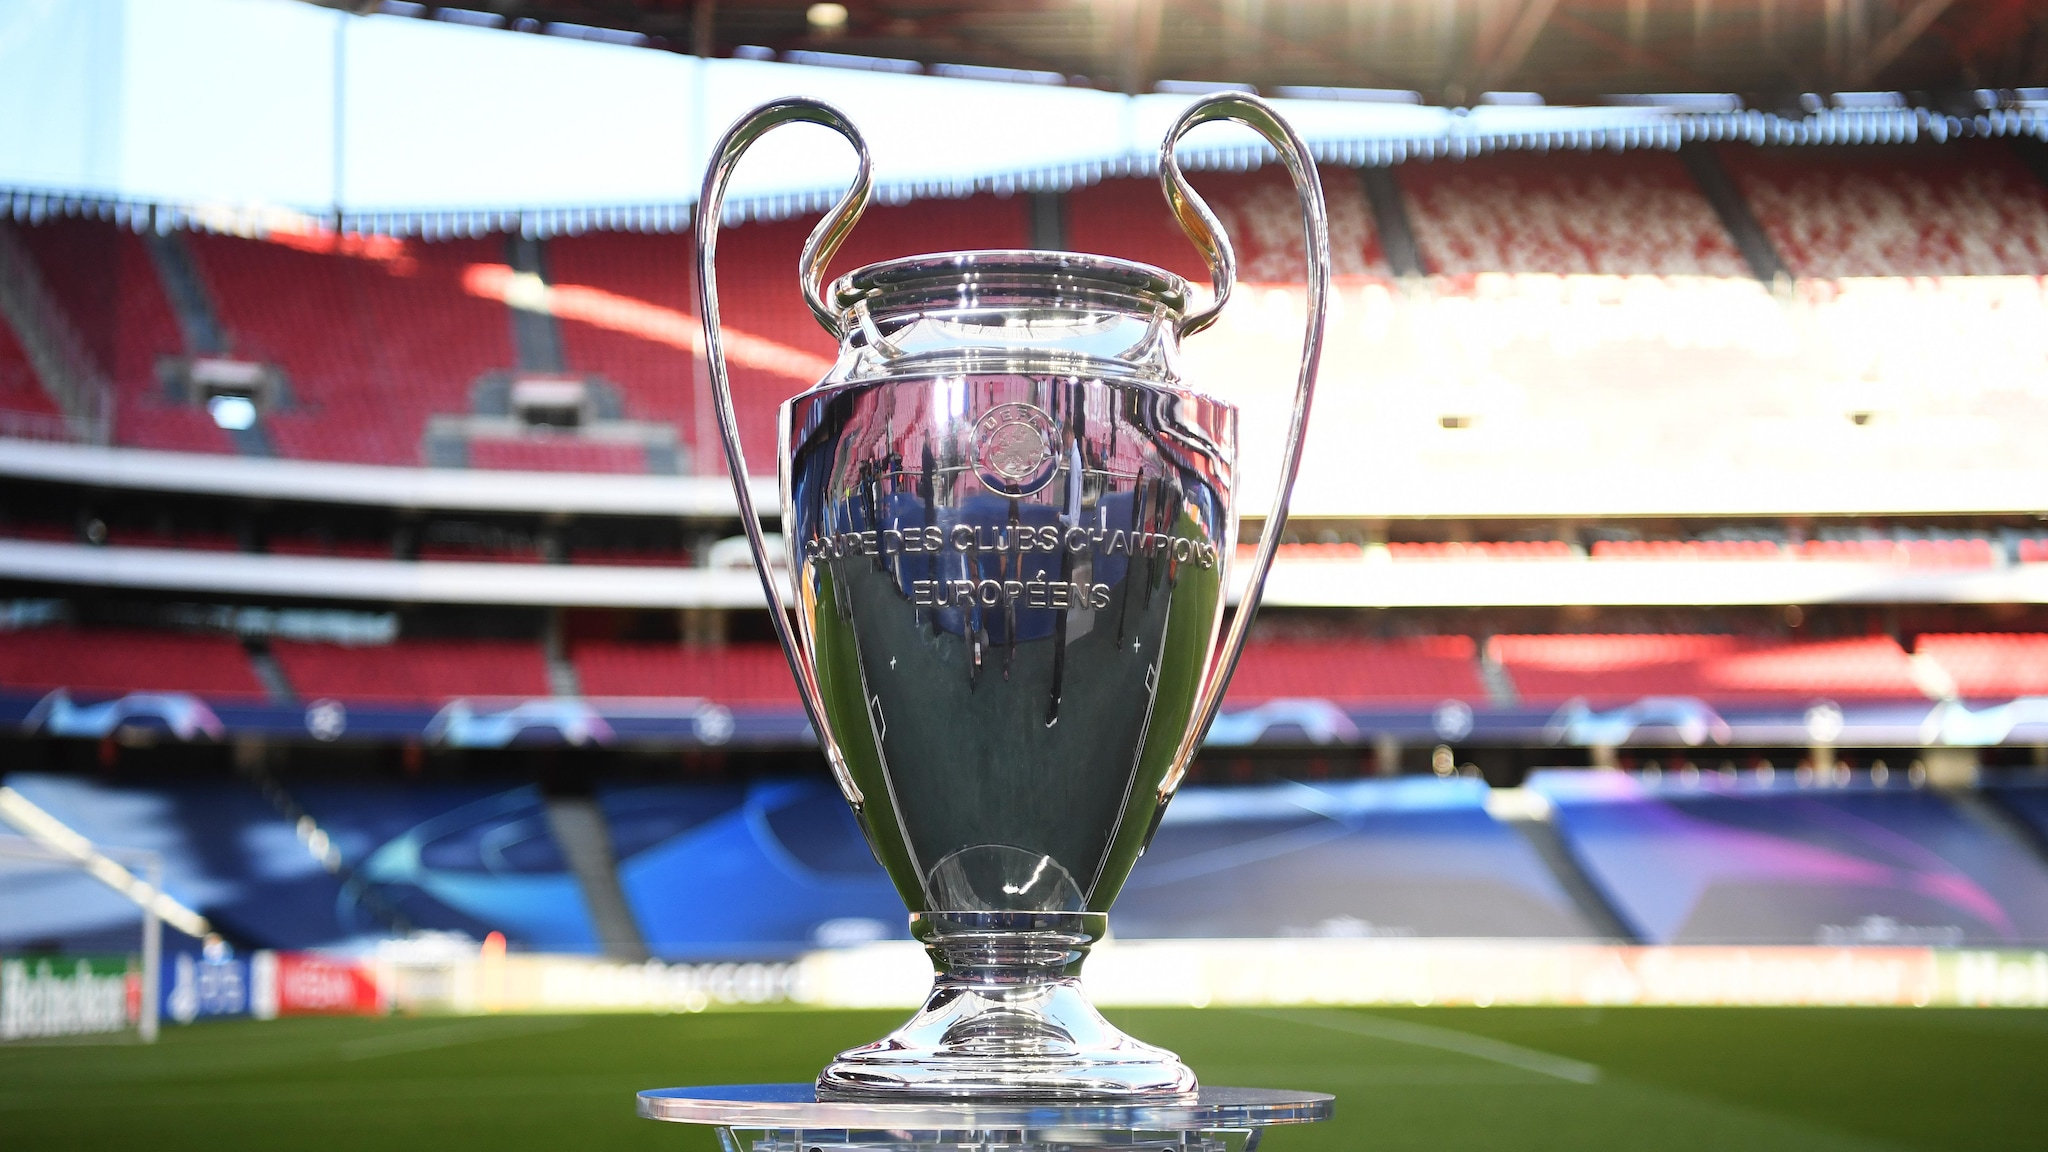 2020 champions league final when and where uefa champions league uefa com 2020 champions league final when and